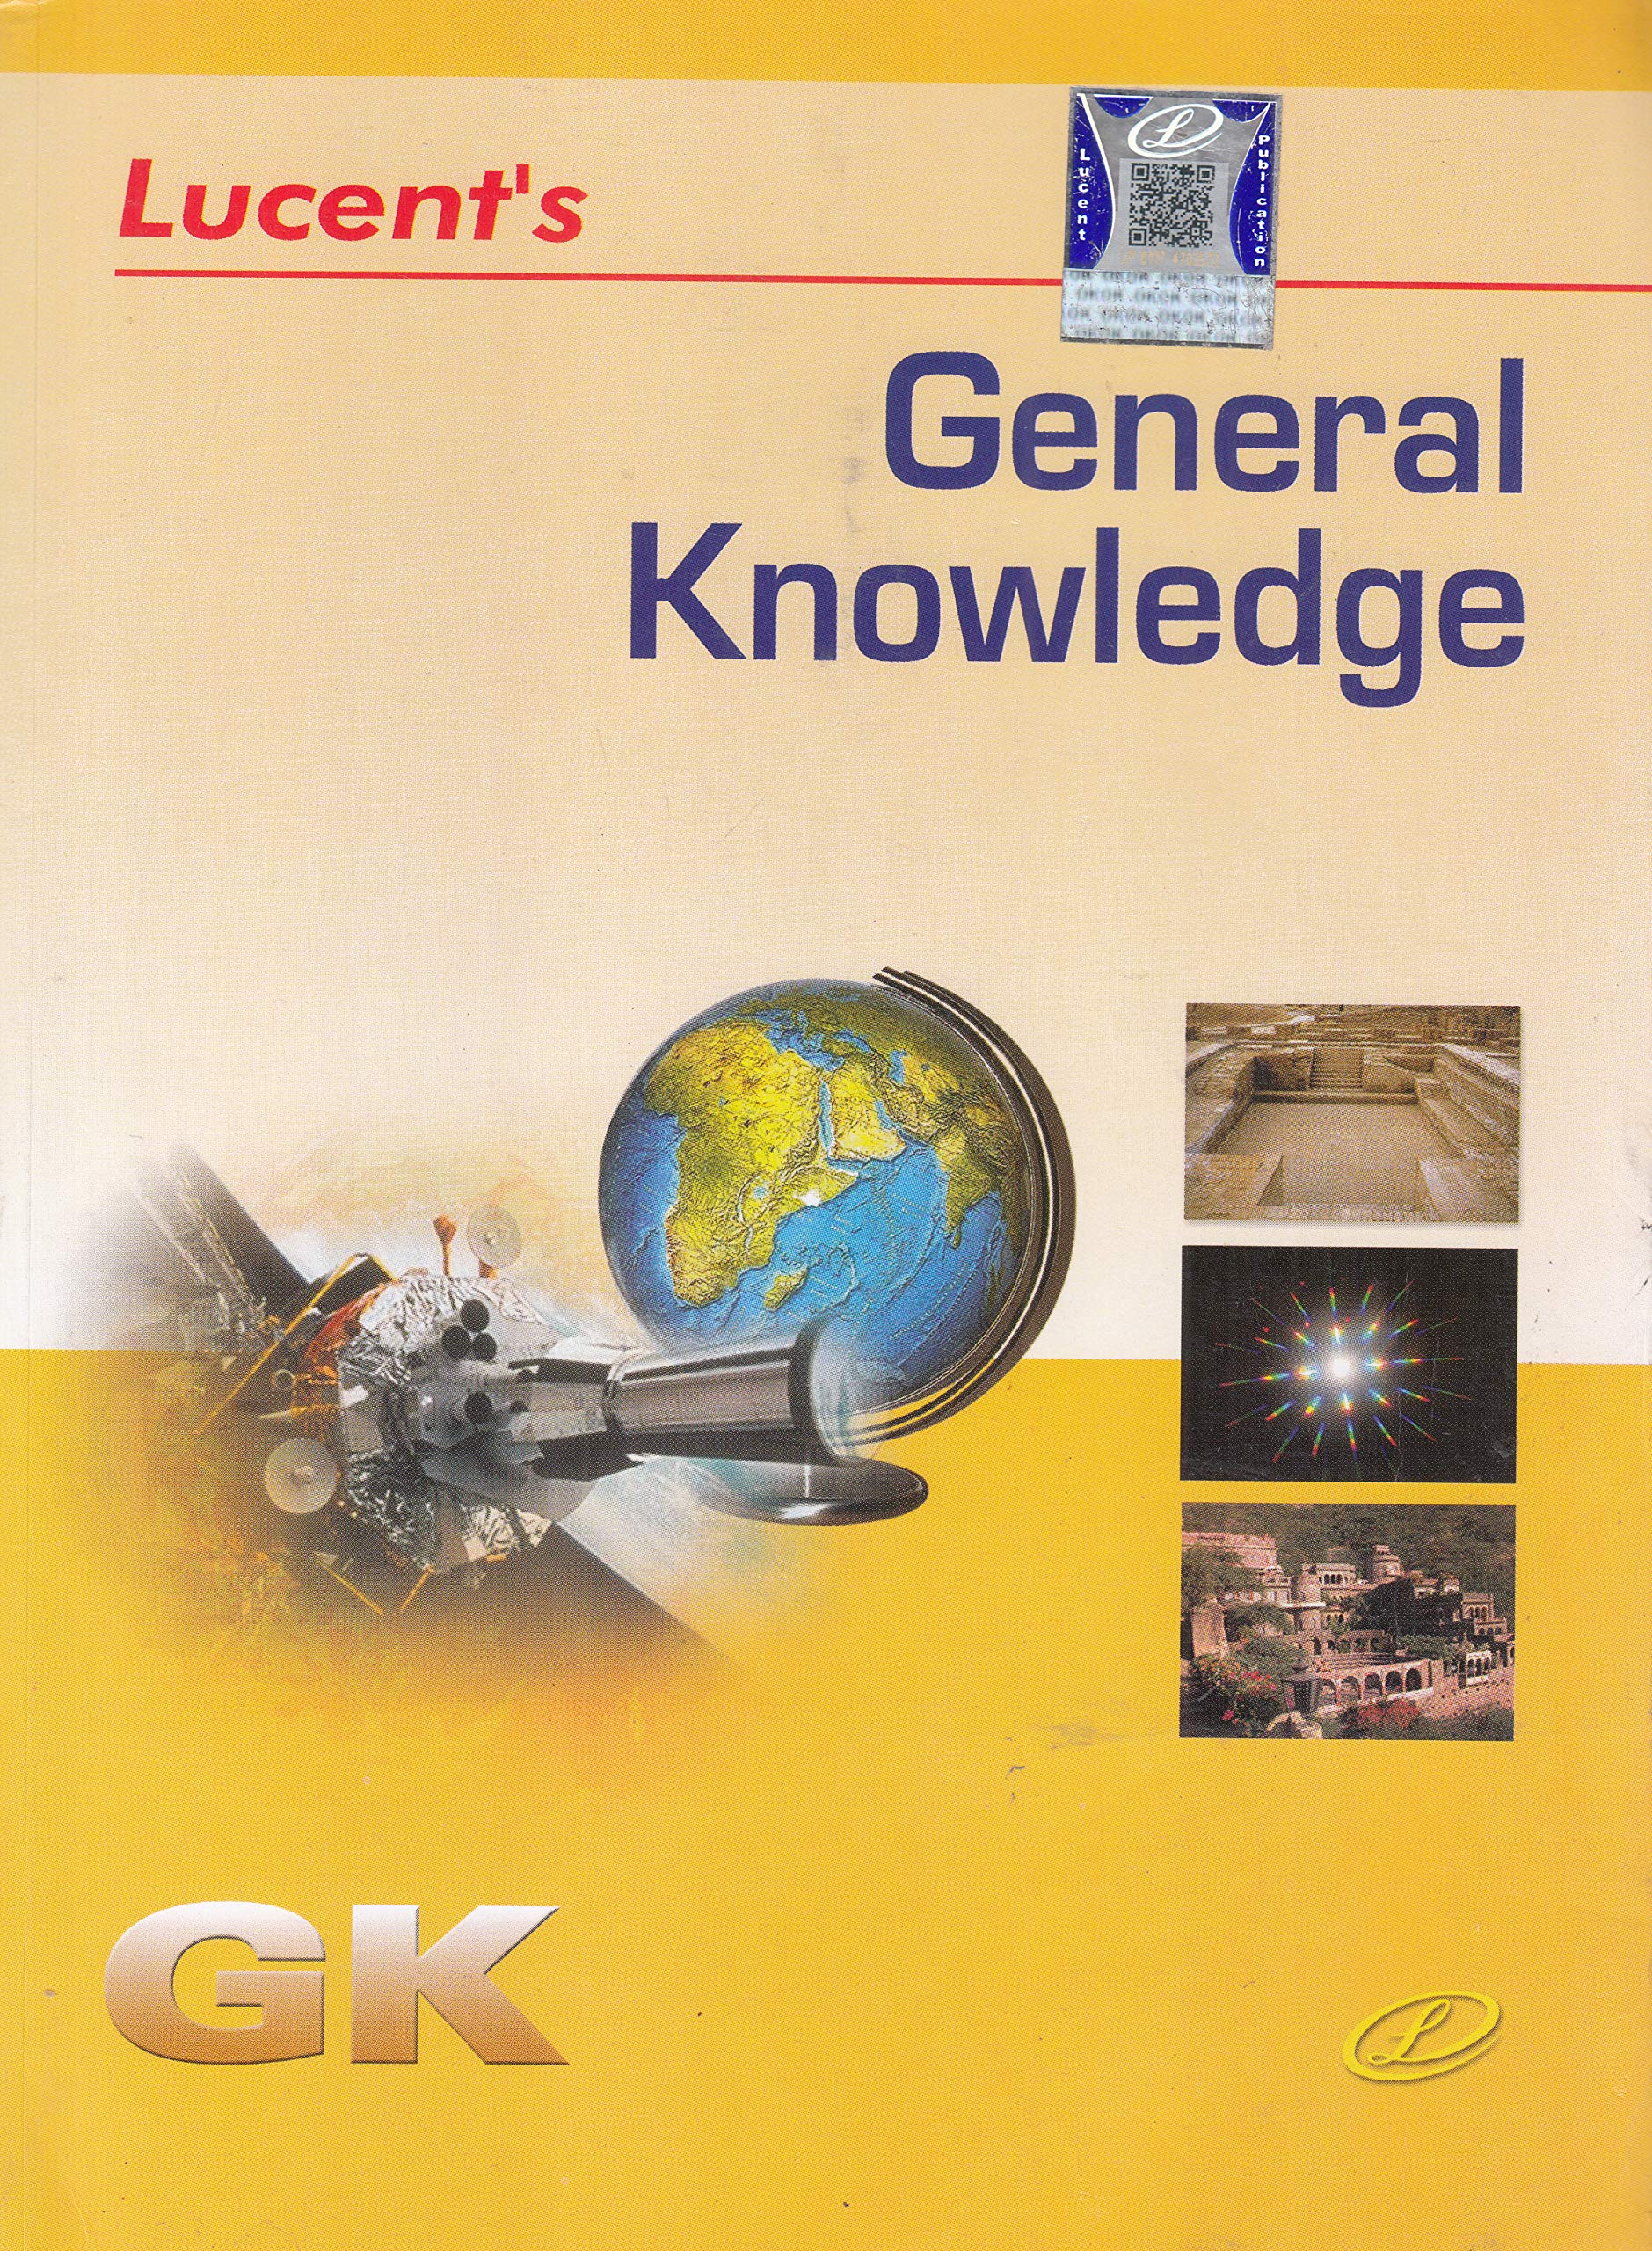 General Knowledge Paperback – 1 January 2018 (Lucent's)